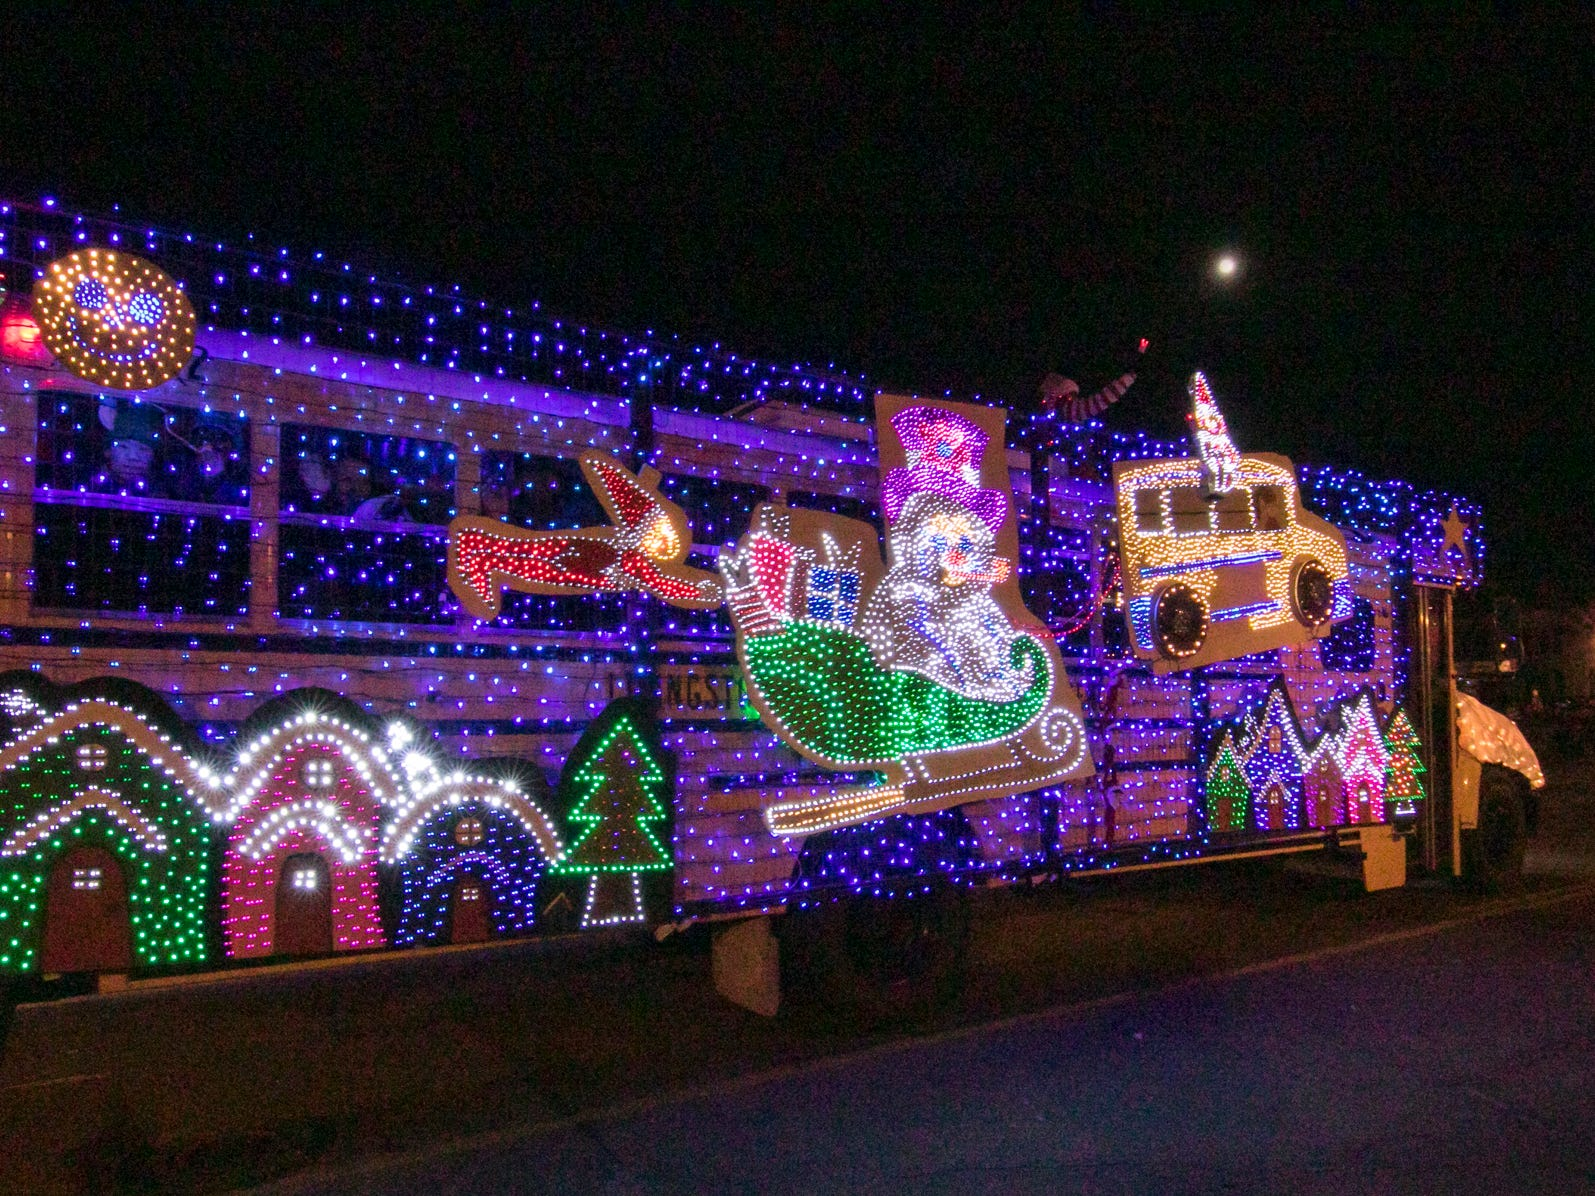 This decorated schoolbus won the Razzle Dazzle award in the Fantasy of Lights parade Friday, Nov. 23, 2018.